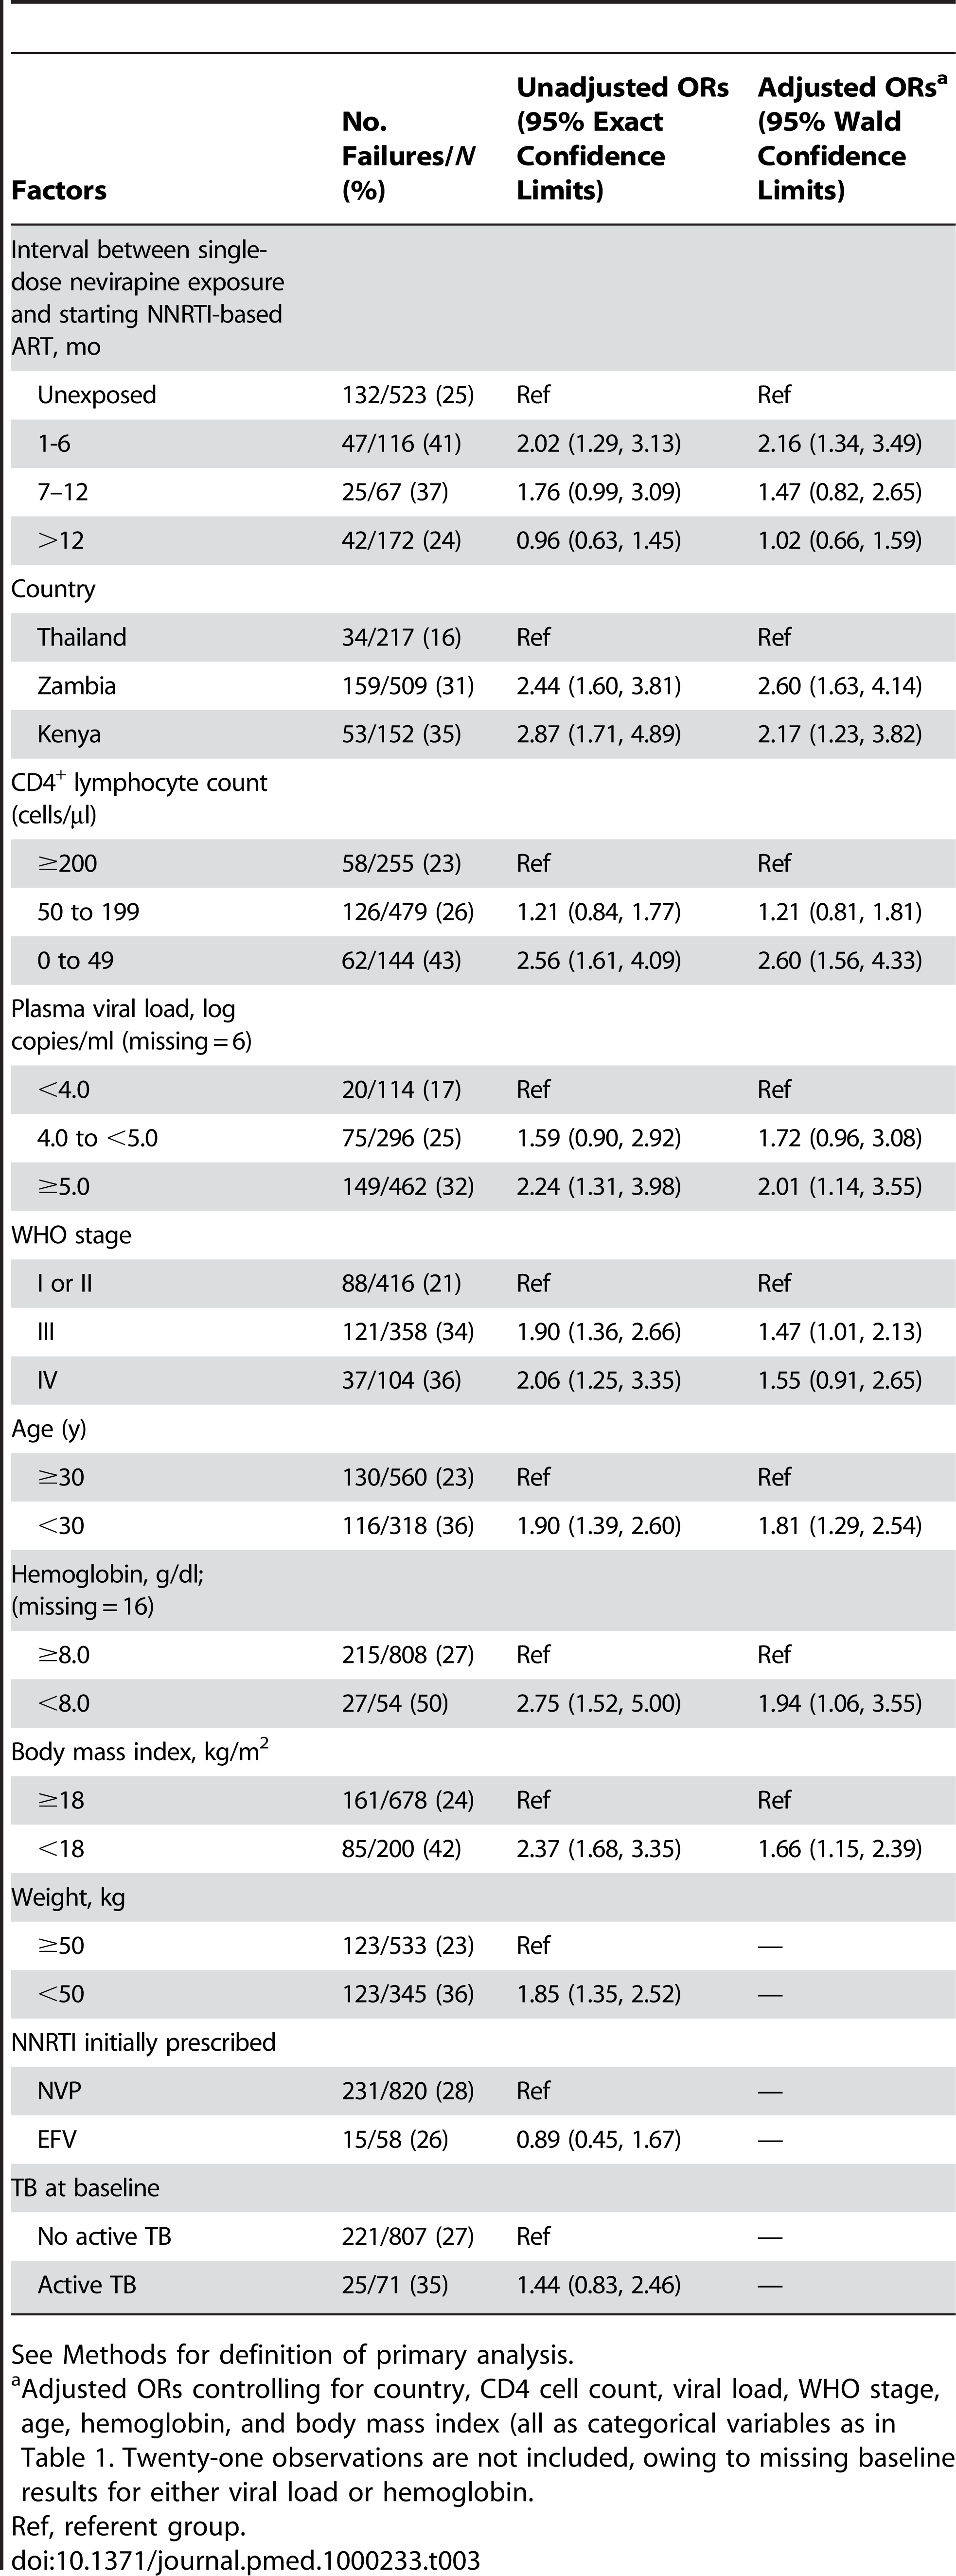 Factors associated with treatment failure in the primary analysis in the NNRTI Response Study—Zambia, Kenya, Thailand (2005–2008).